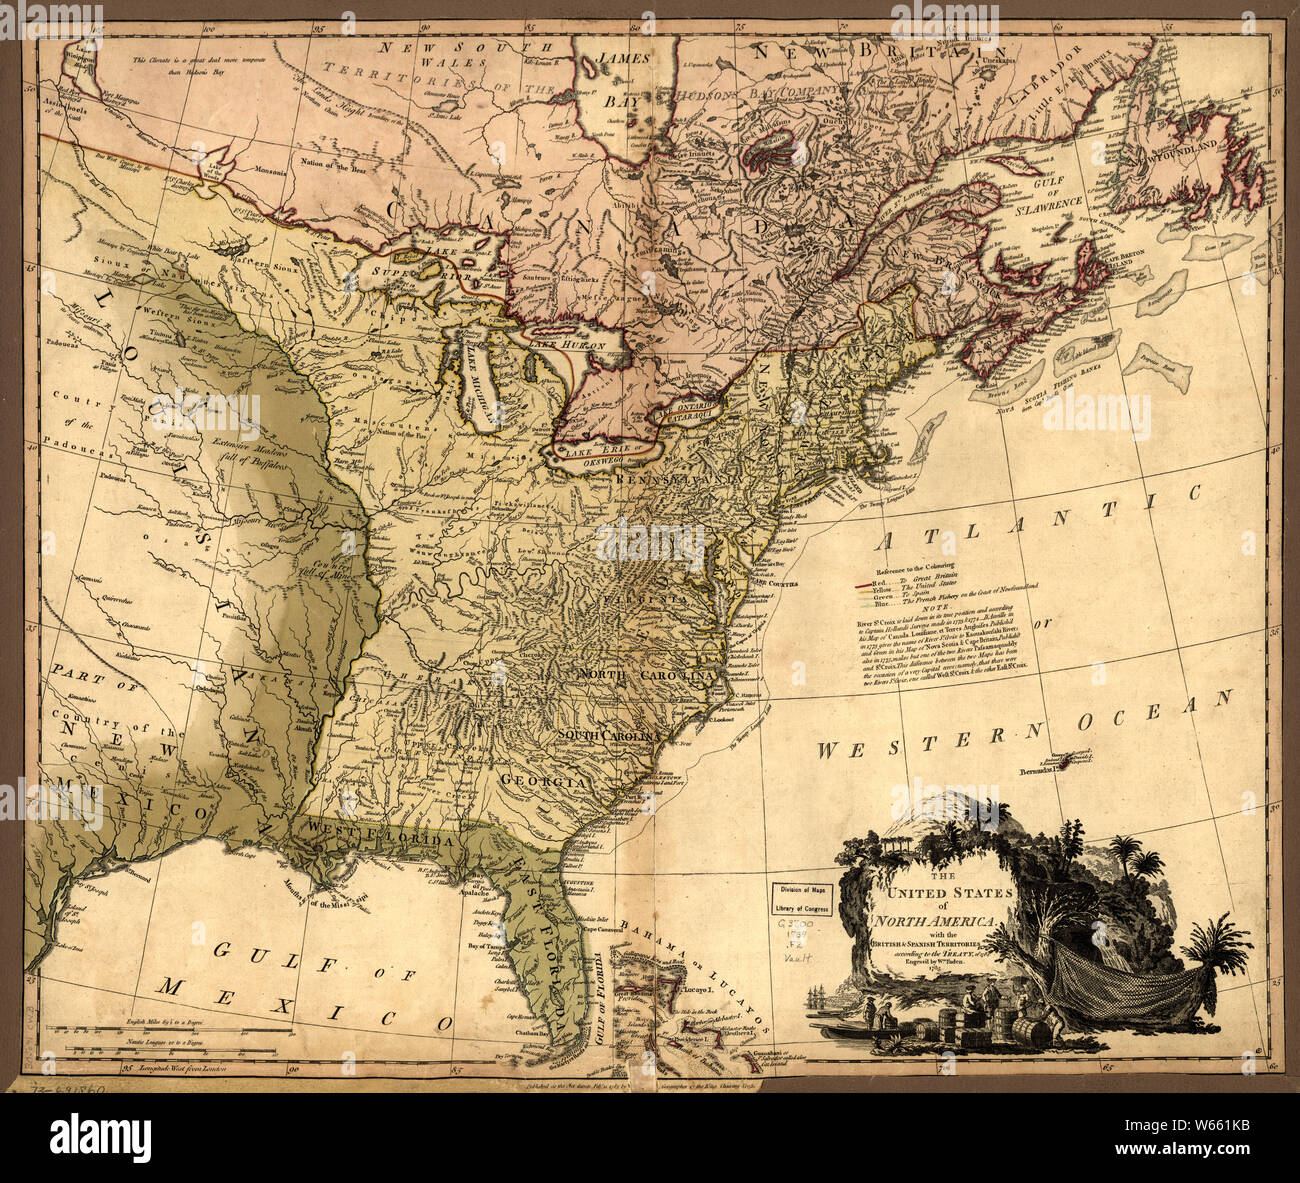 American Revolutionary War Era Maps 1750-1786 950 The United ... on united states in 1790, russia map 1750, 13 colonies map 1750, united states before louisiana purchase, italy map 1750, united states in 1890, england map 1750, new york colonial map 1750, united states historical maps, usa map 1750, united states outline, united states interstate system, south america map 1750, south carolina map 1750, land claims in north america map 1750, united states of america colonies, germany map 1750, united states 1870s timeline, virginia map 1750, africa map 1750,